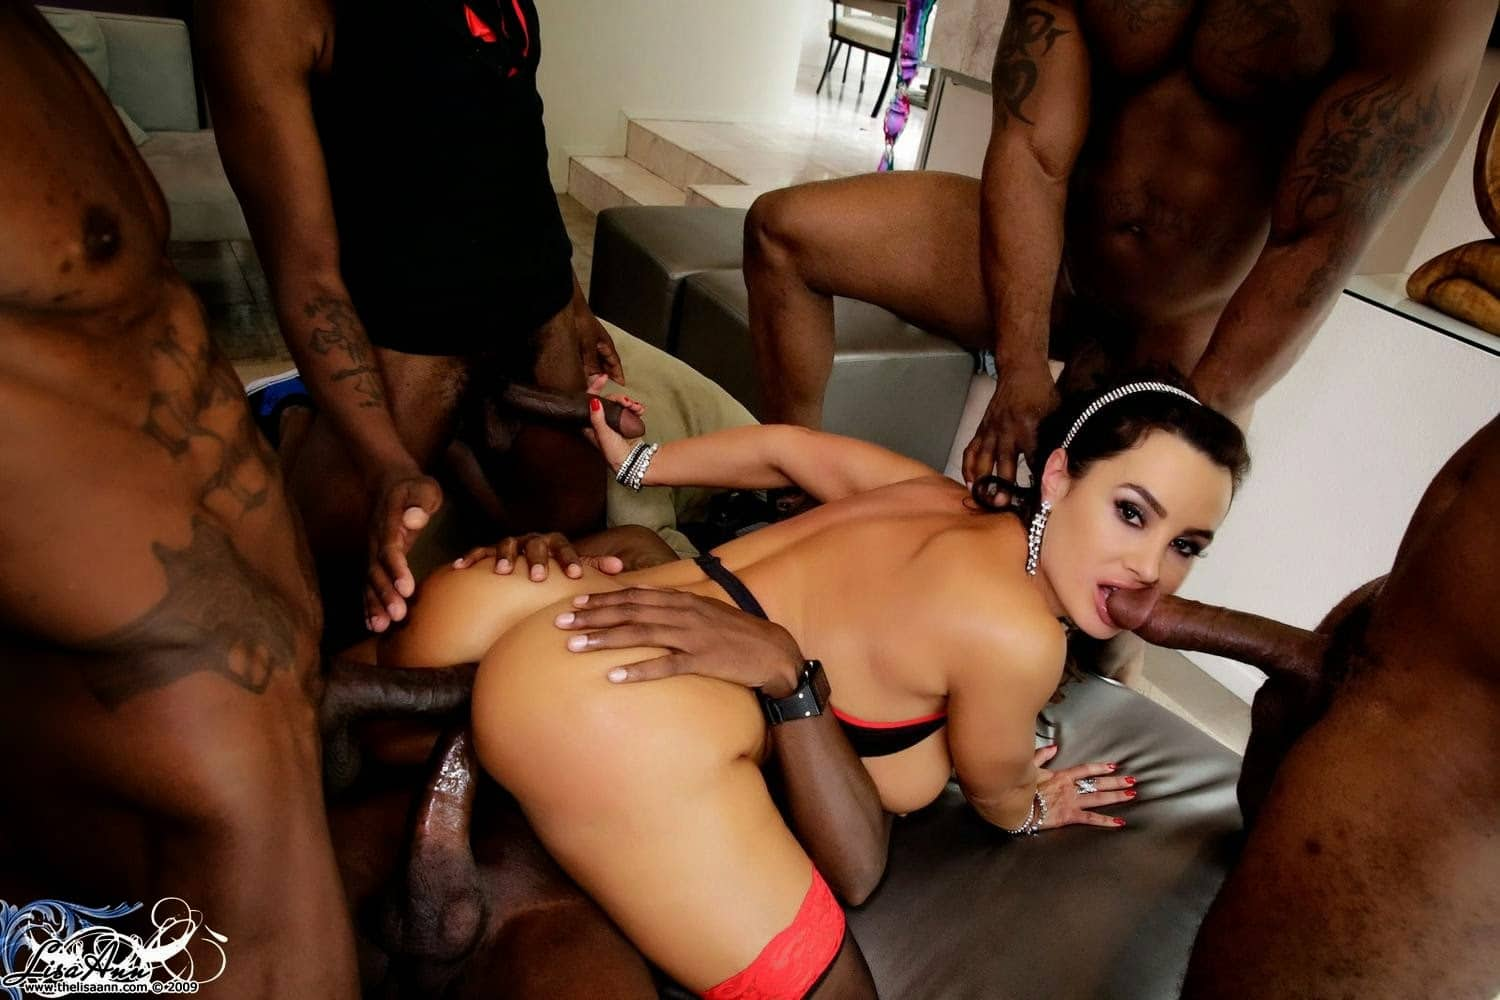 lisa ann gang bang interracial